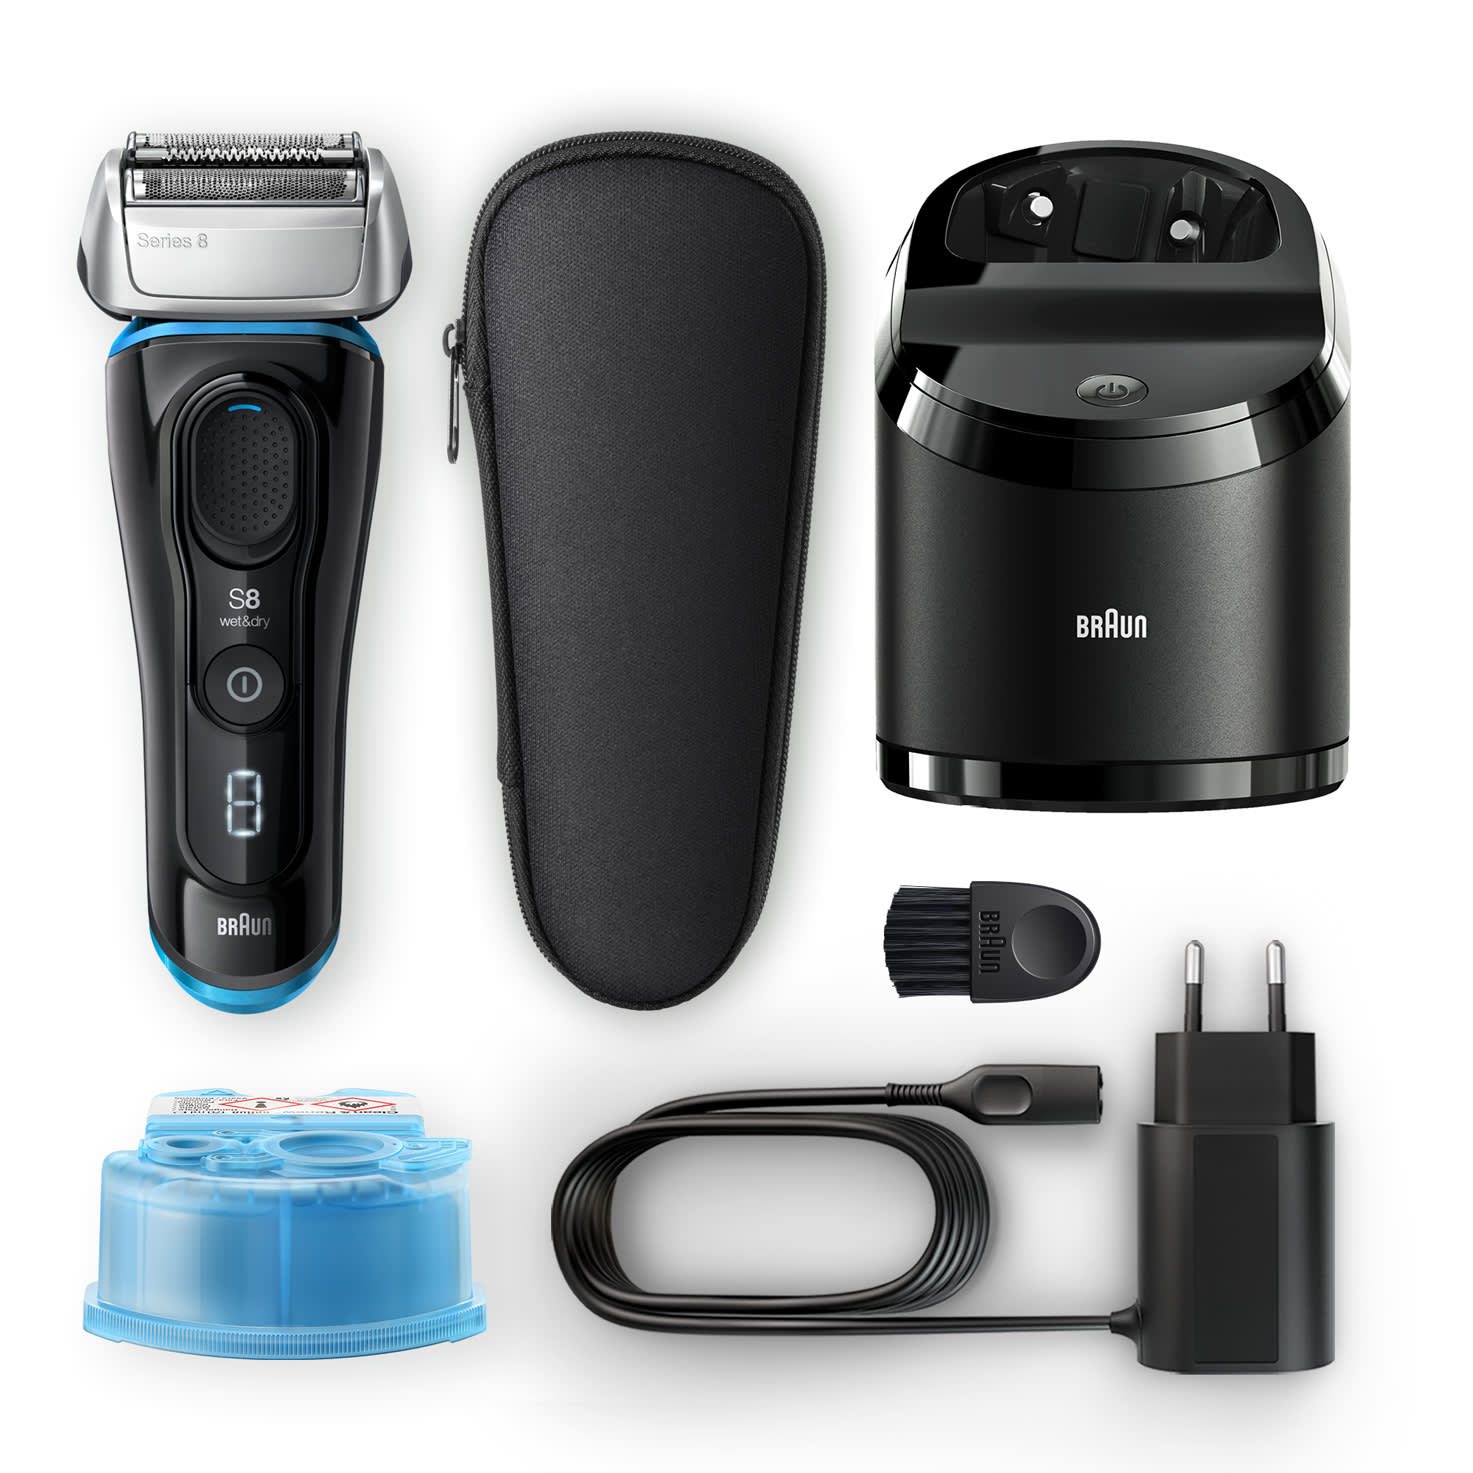 Series 8 8365cc shaver - What´s in the box